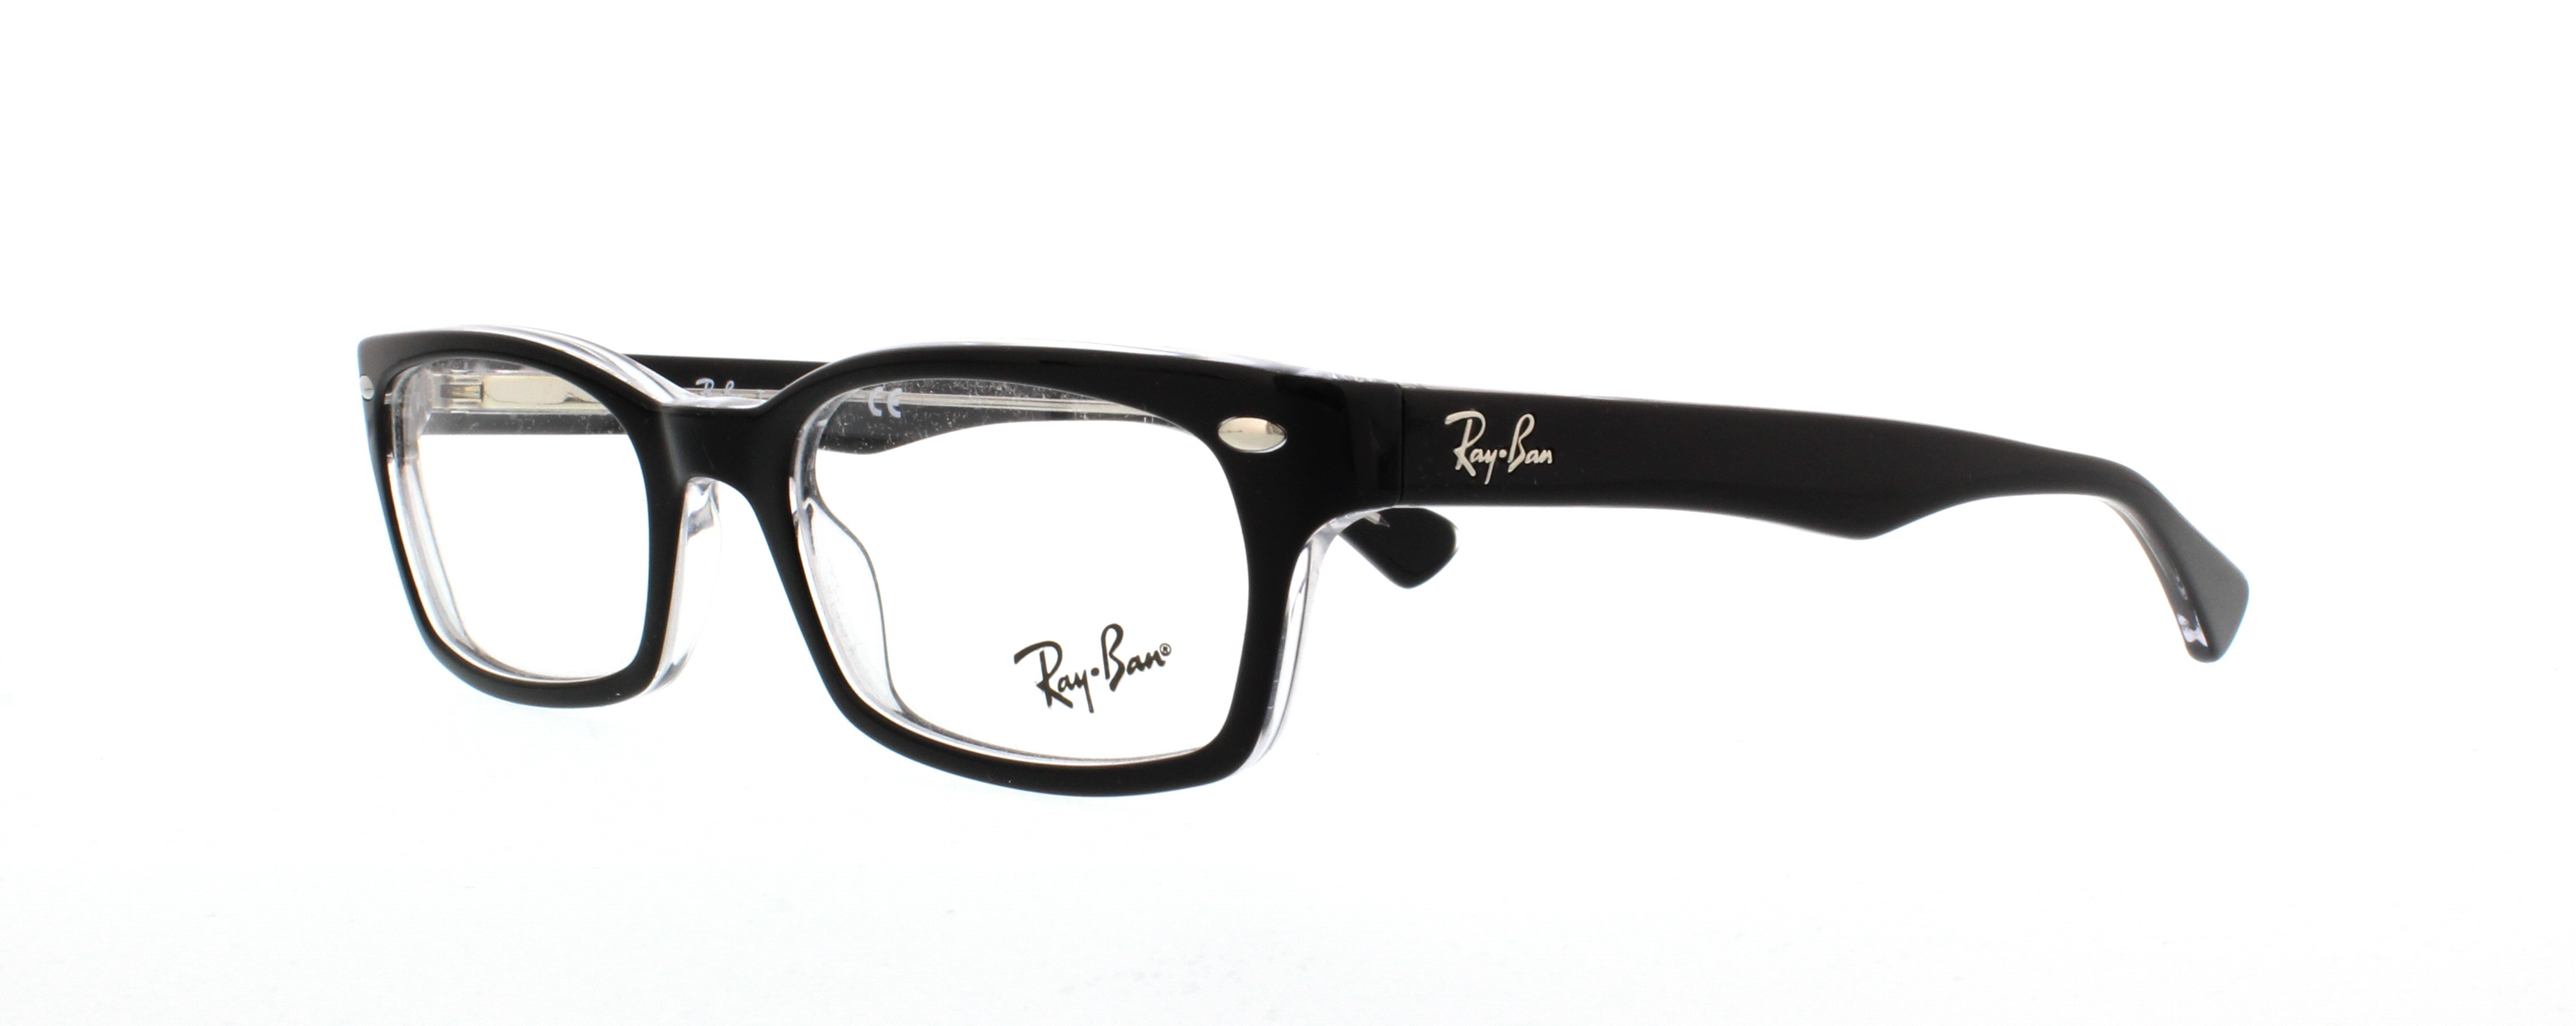 Picture of Ray Ban RX5150